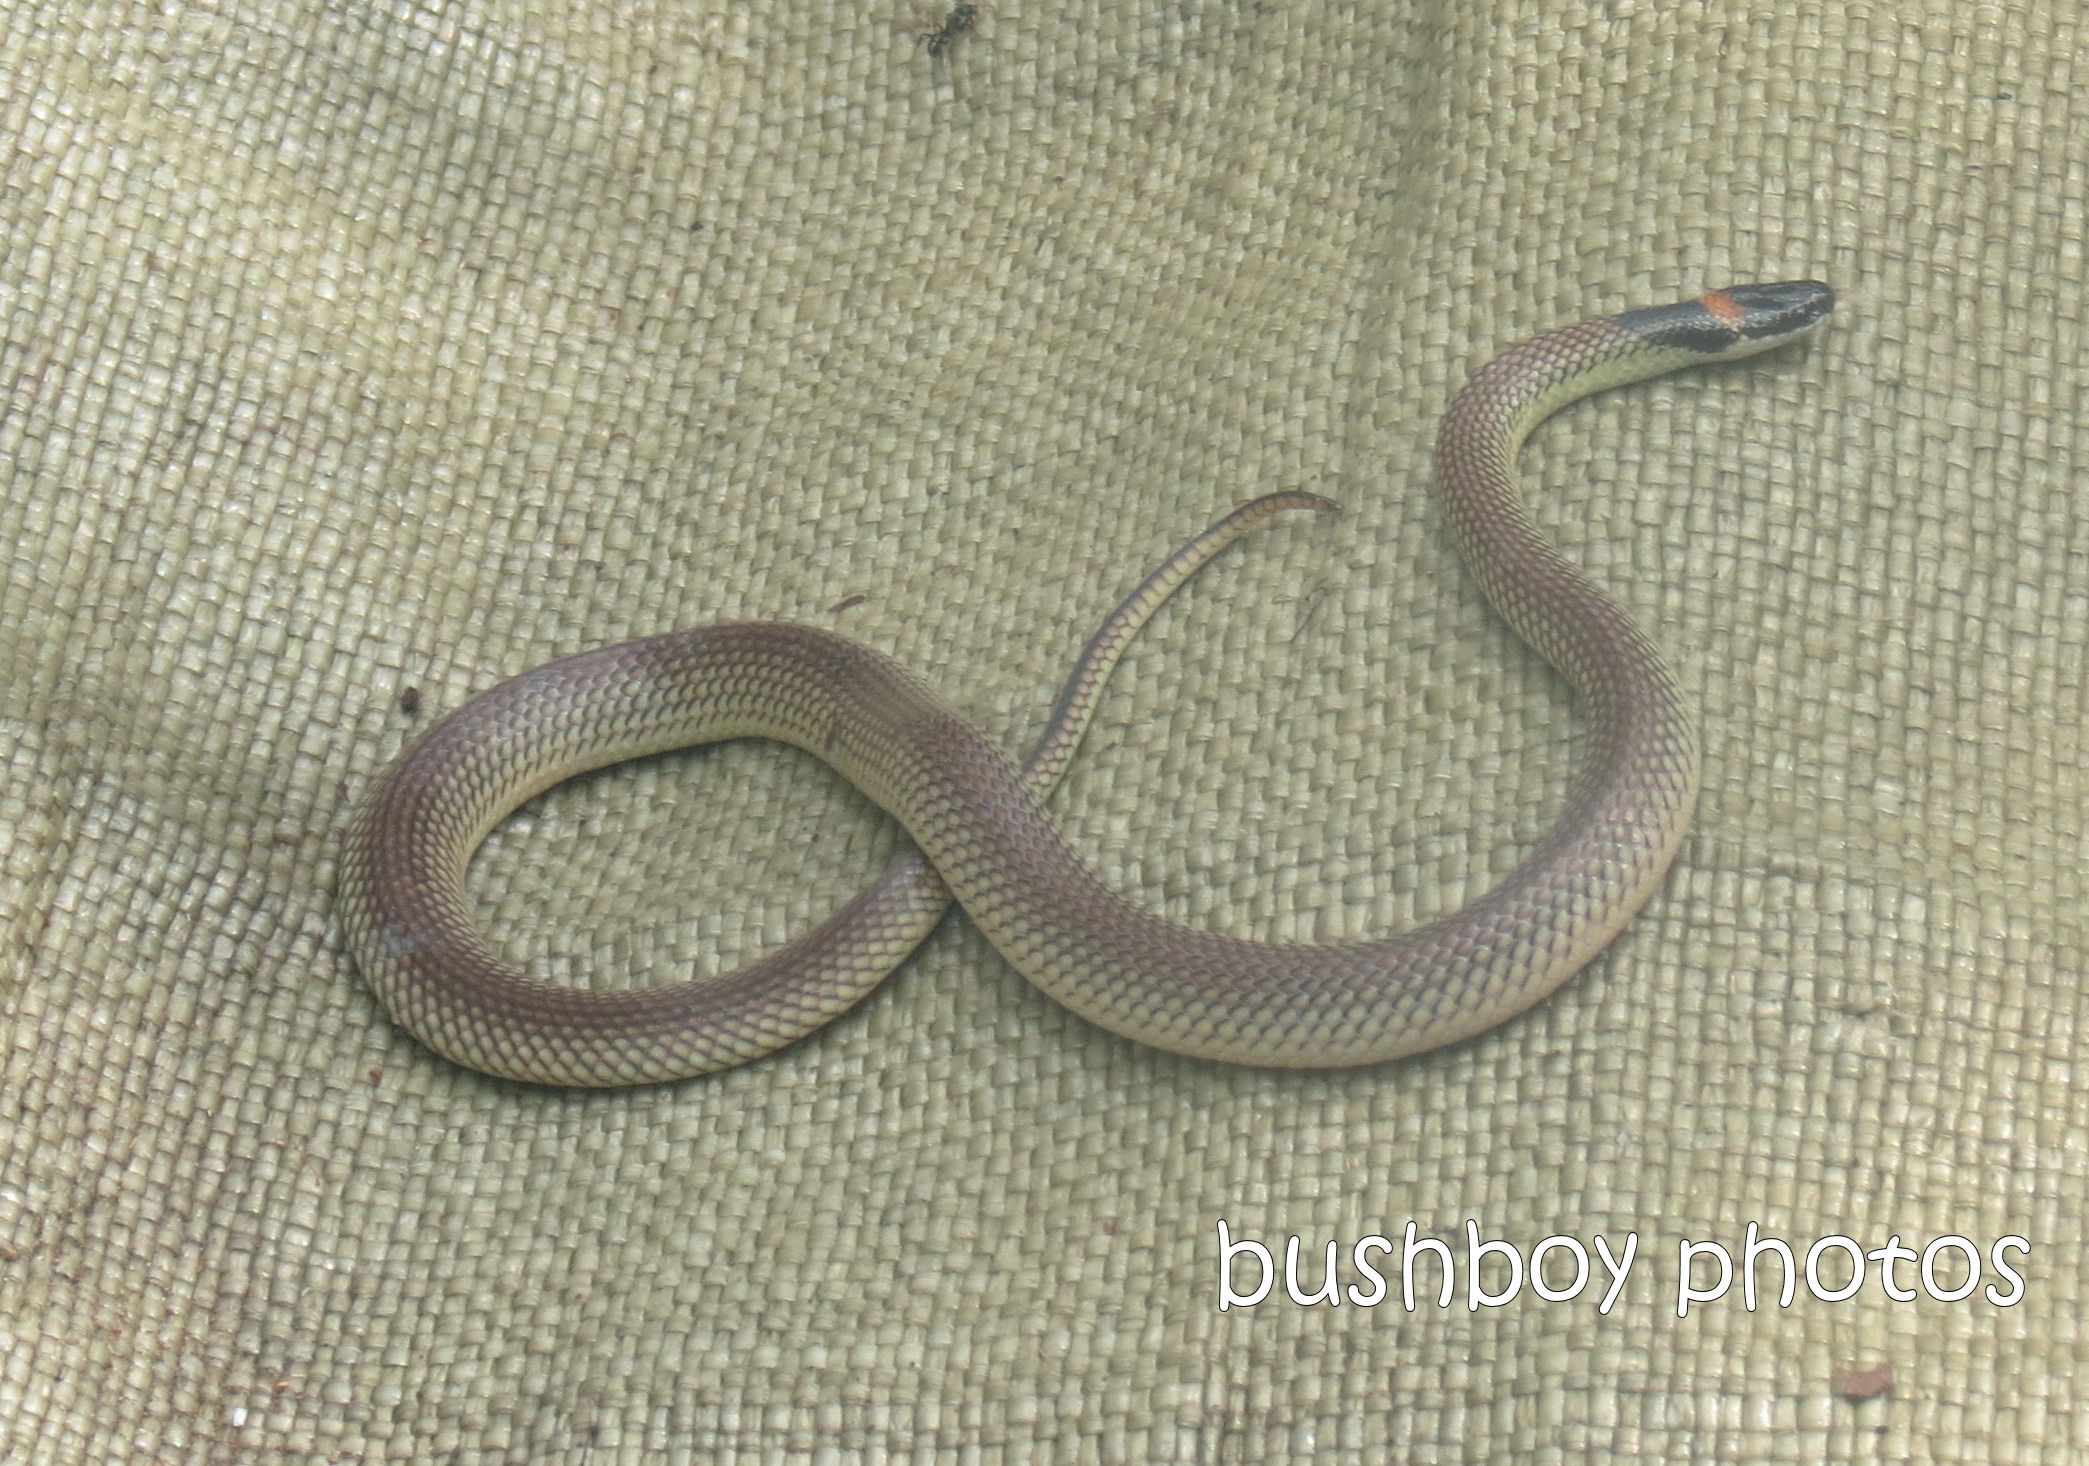 red naped snake_crop_home_feb 2013